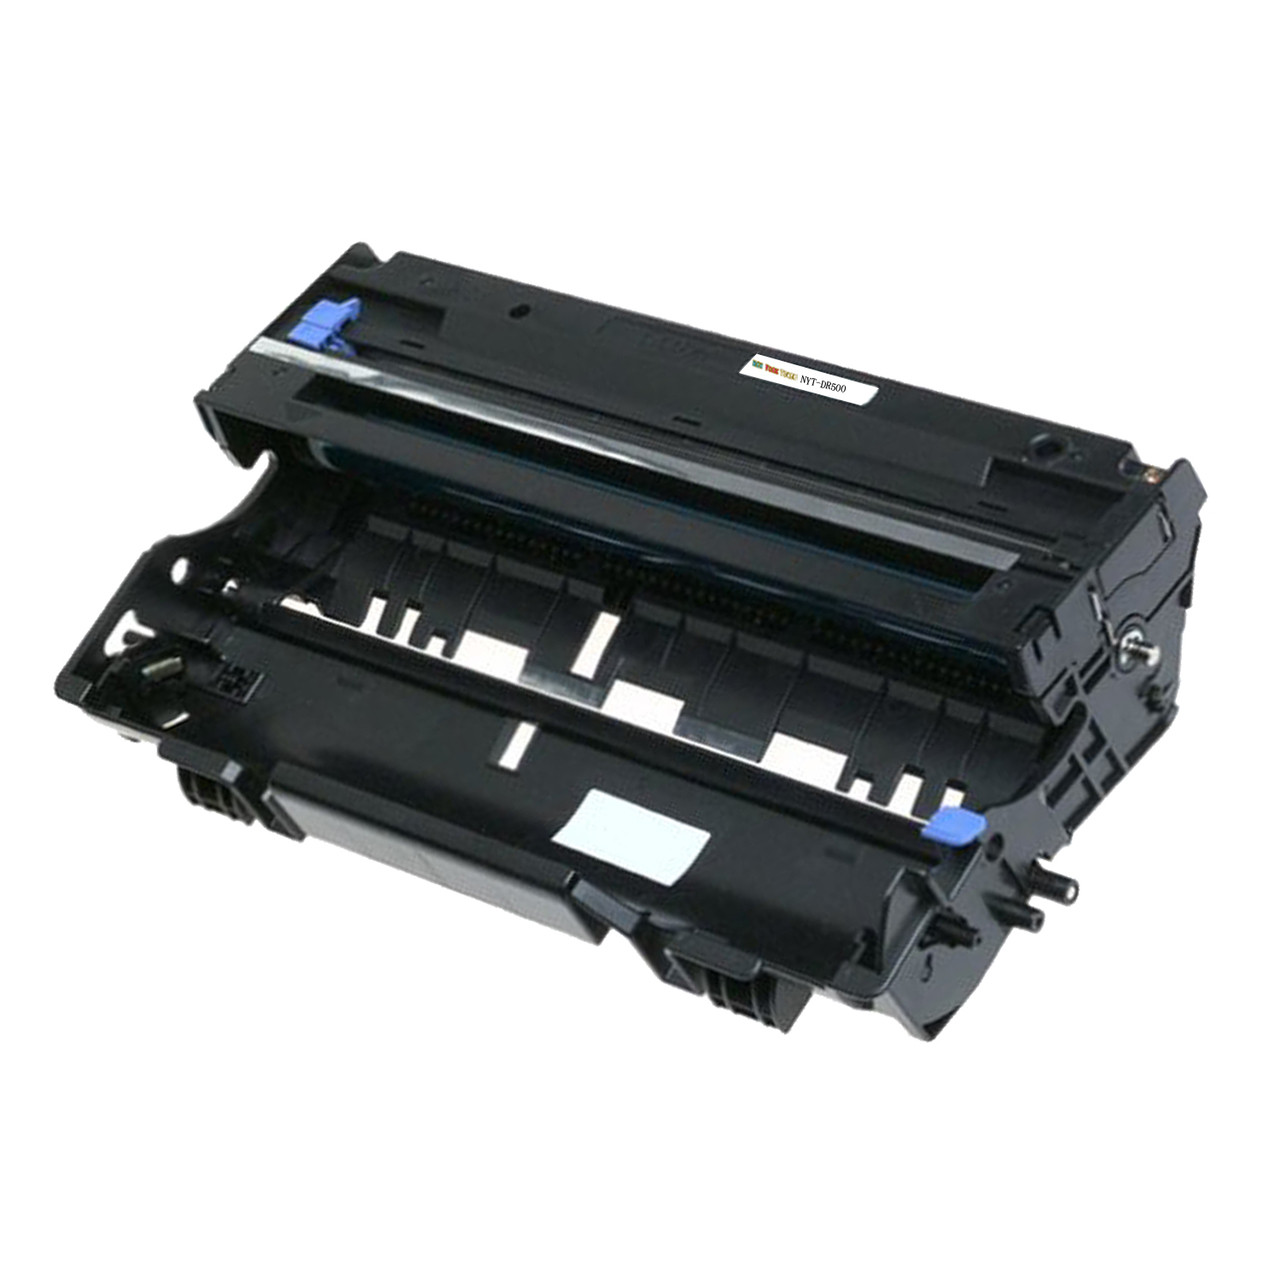 Brother HL-1870N Printer Drivers Download (2019)